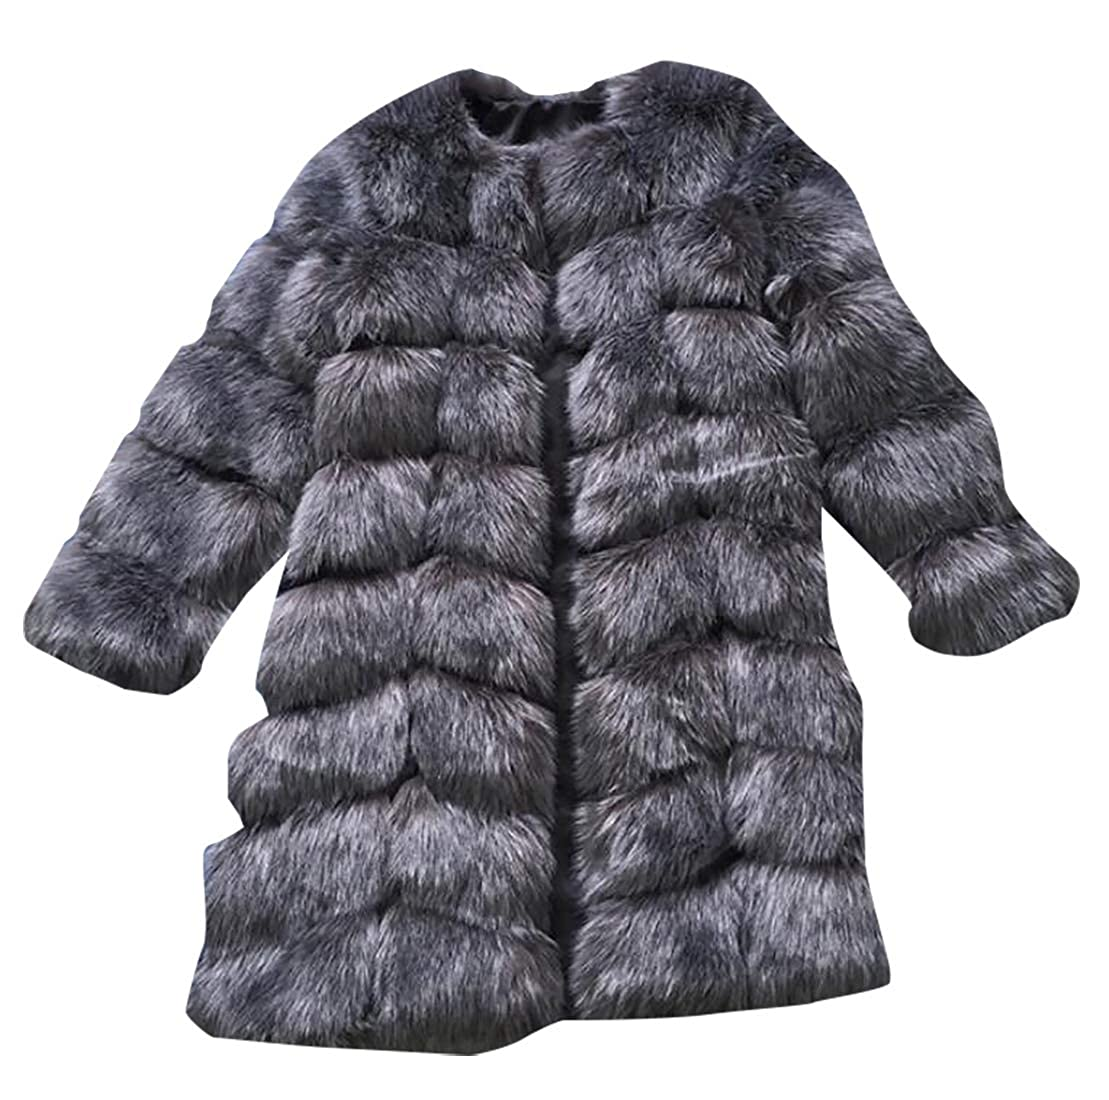 4 Sanderso Womens Faux Fur Coat Parka Jacket Trench Warm Thick Outerwear Overcoat